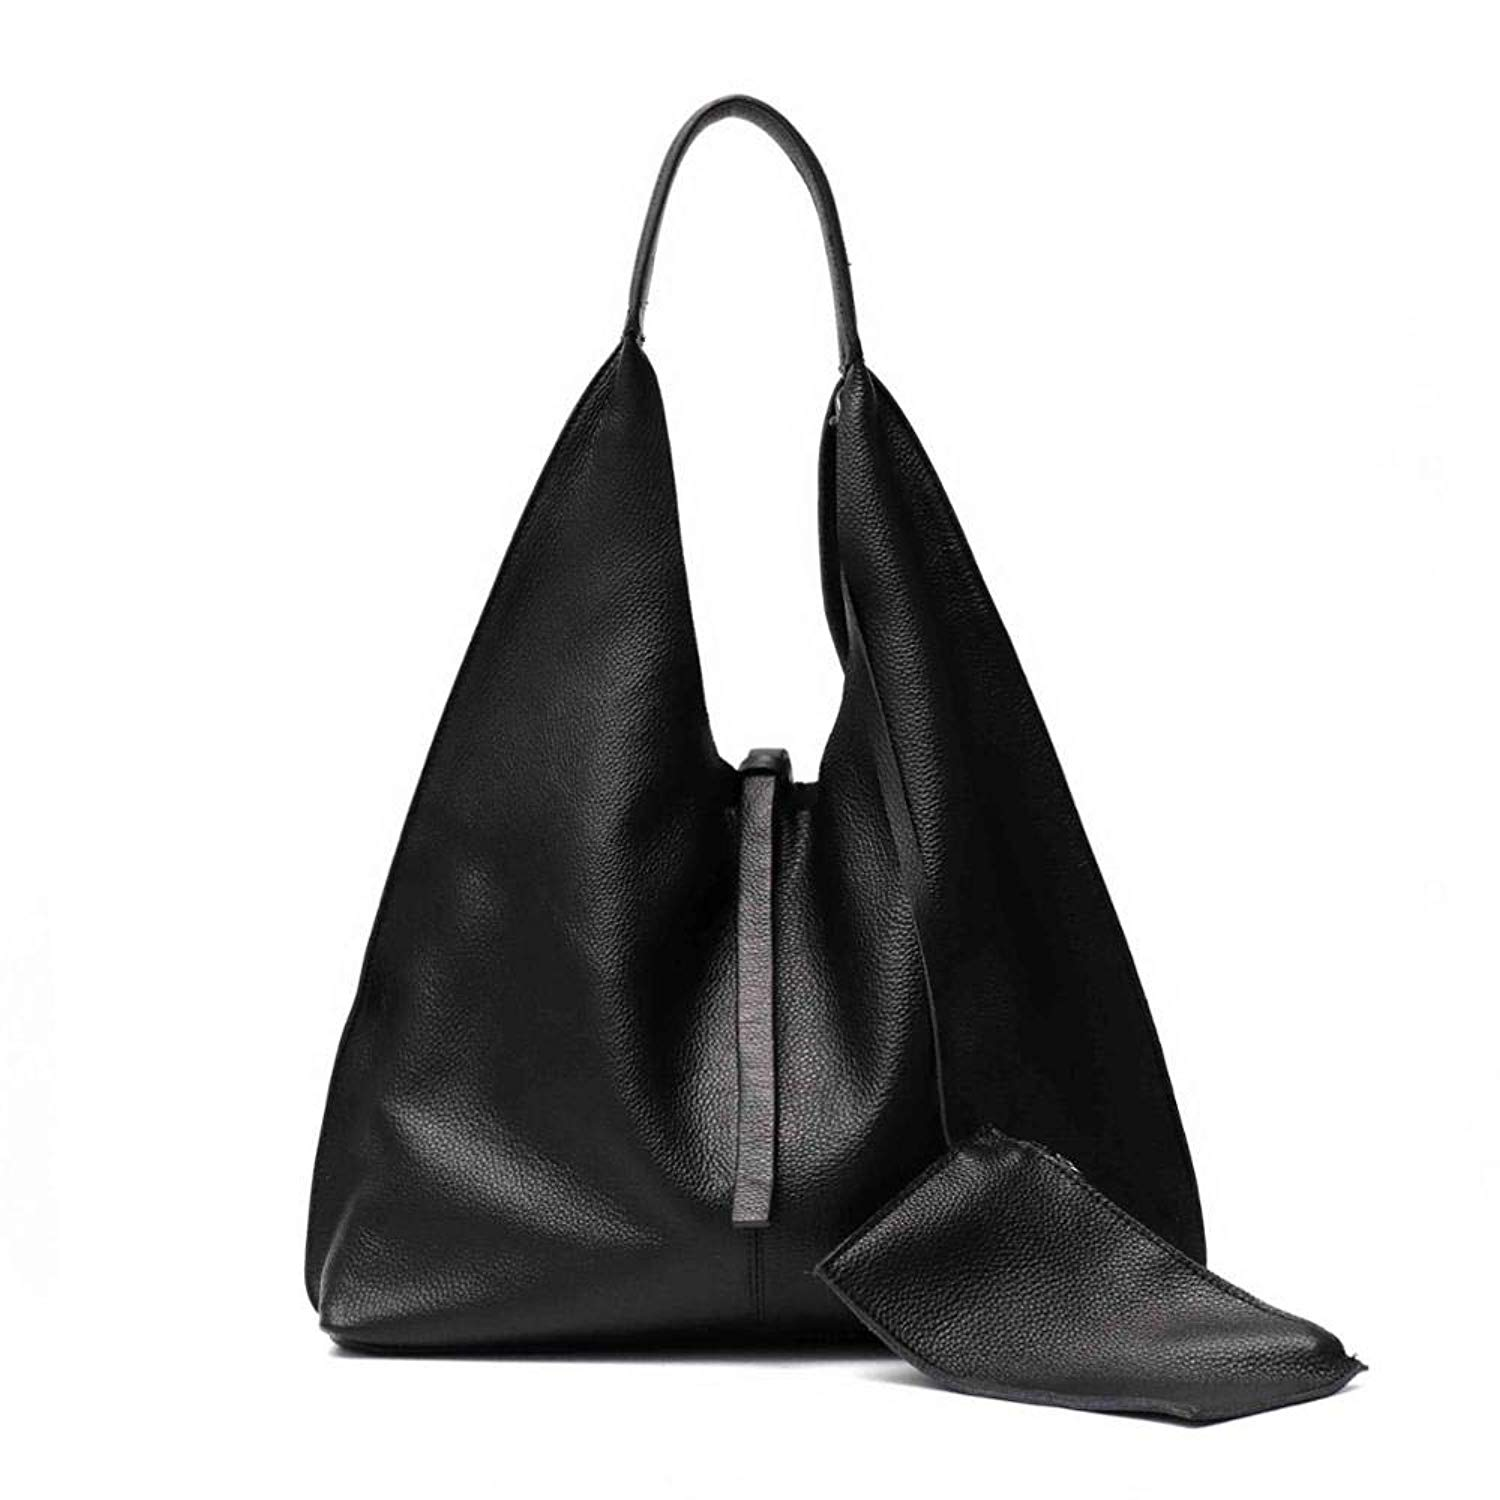 20353b61cf15 Cheap Hobo Bags Leather, find Hobo Bags Leather deals on line at ...